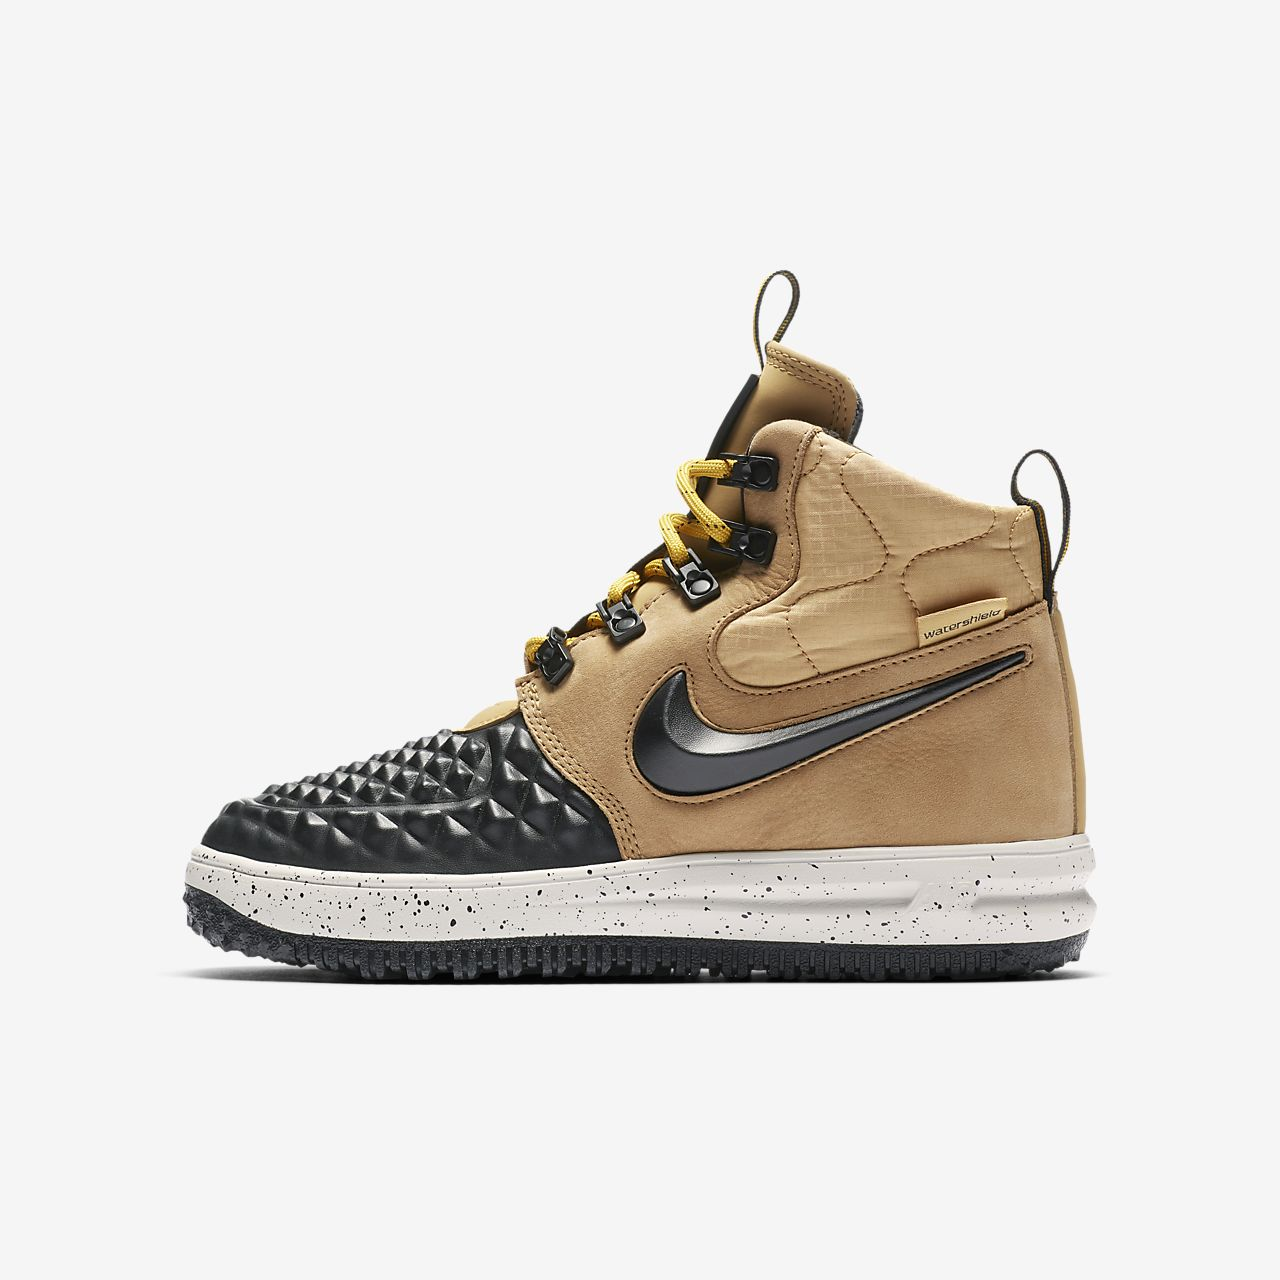 736de34e7914 With Nike Flyknits and AF1 Lows Prev. Next. 2 Colors. Nike Lunar Force 1 .